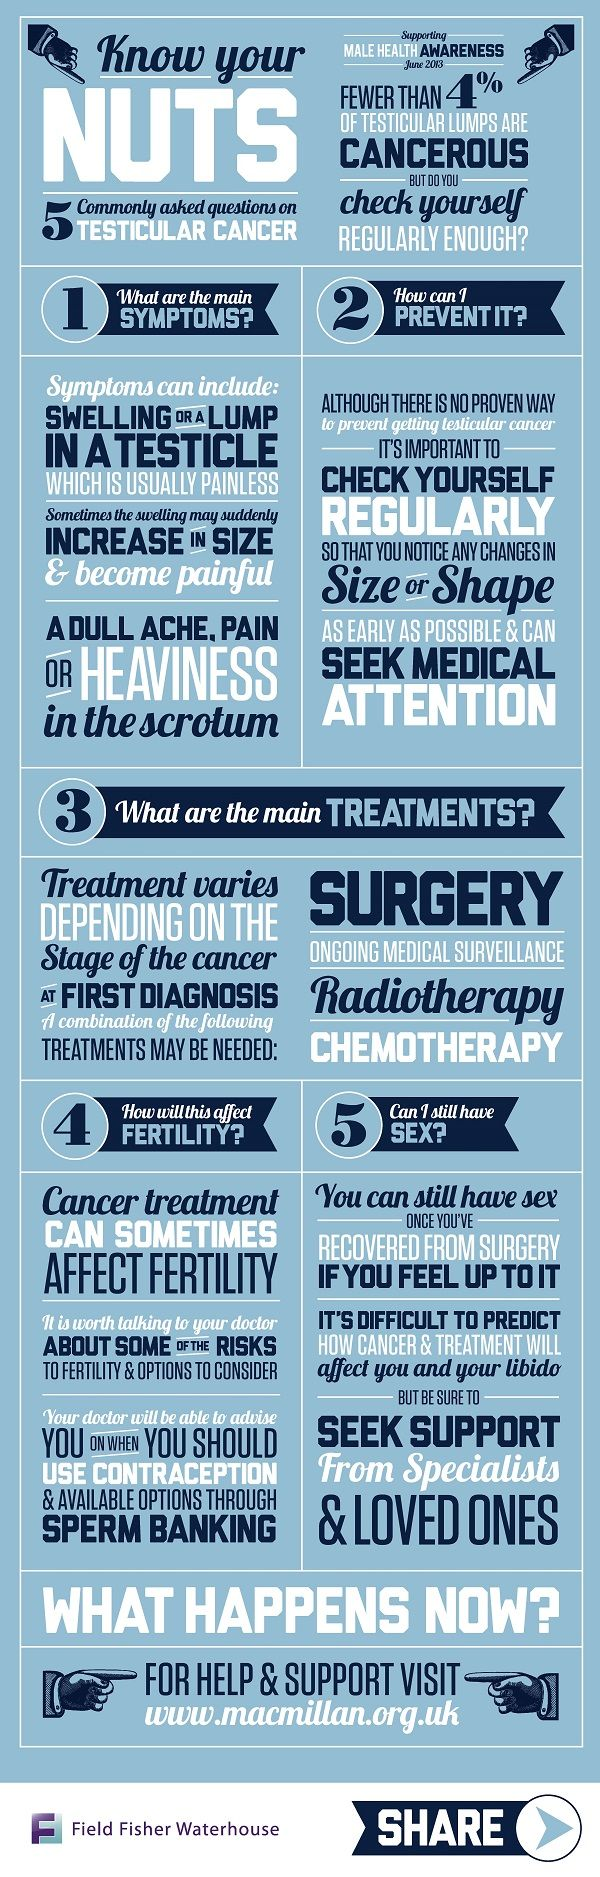 Know Your Nuts: An FAQ on Testicluar Cancer [Infographic] JULY 17, 2013| BY ERIC LYDAY | HEALTH